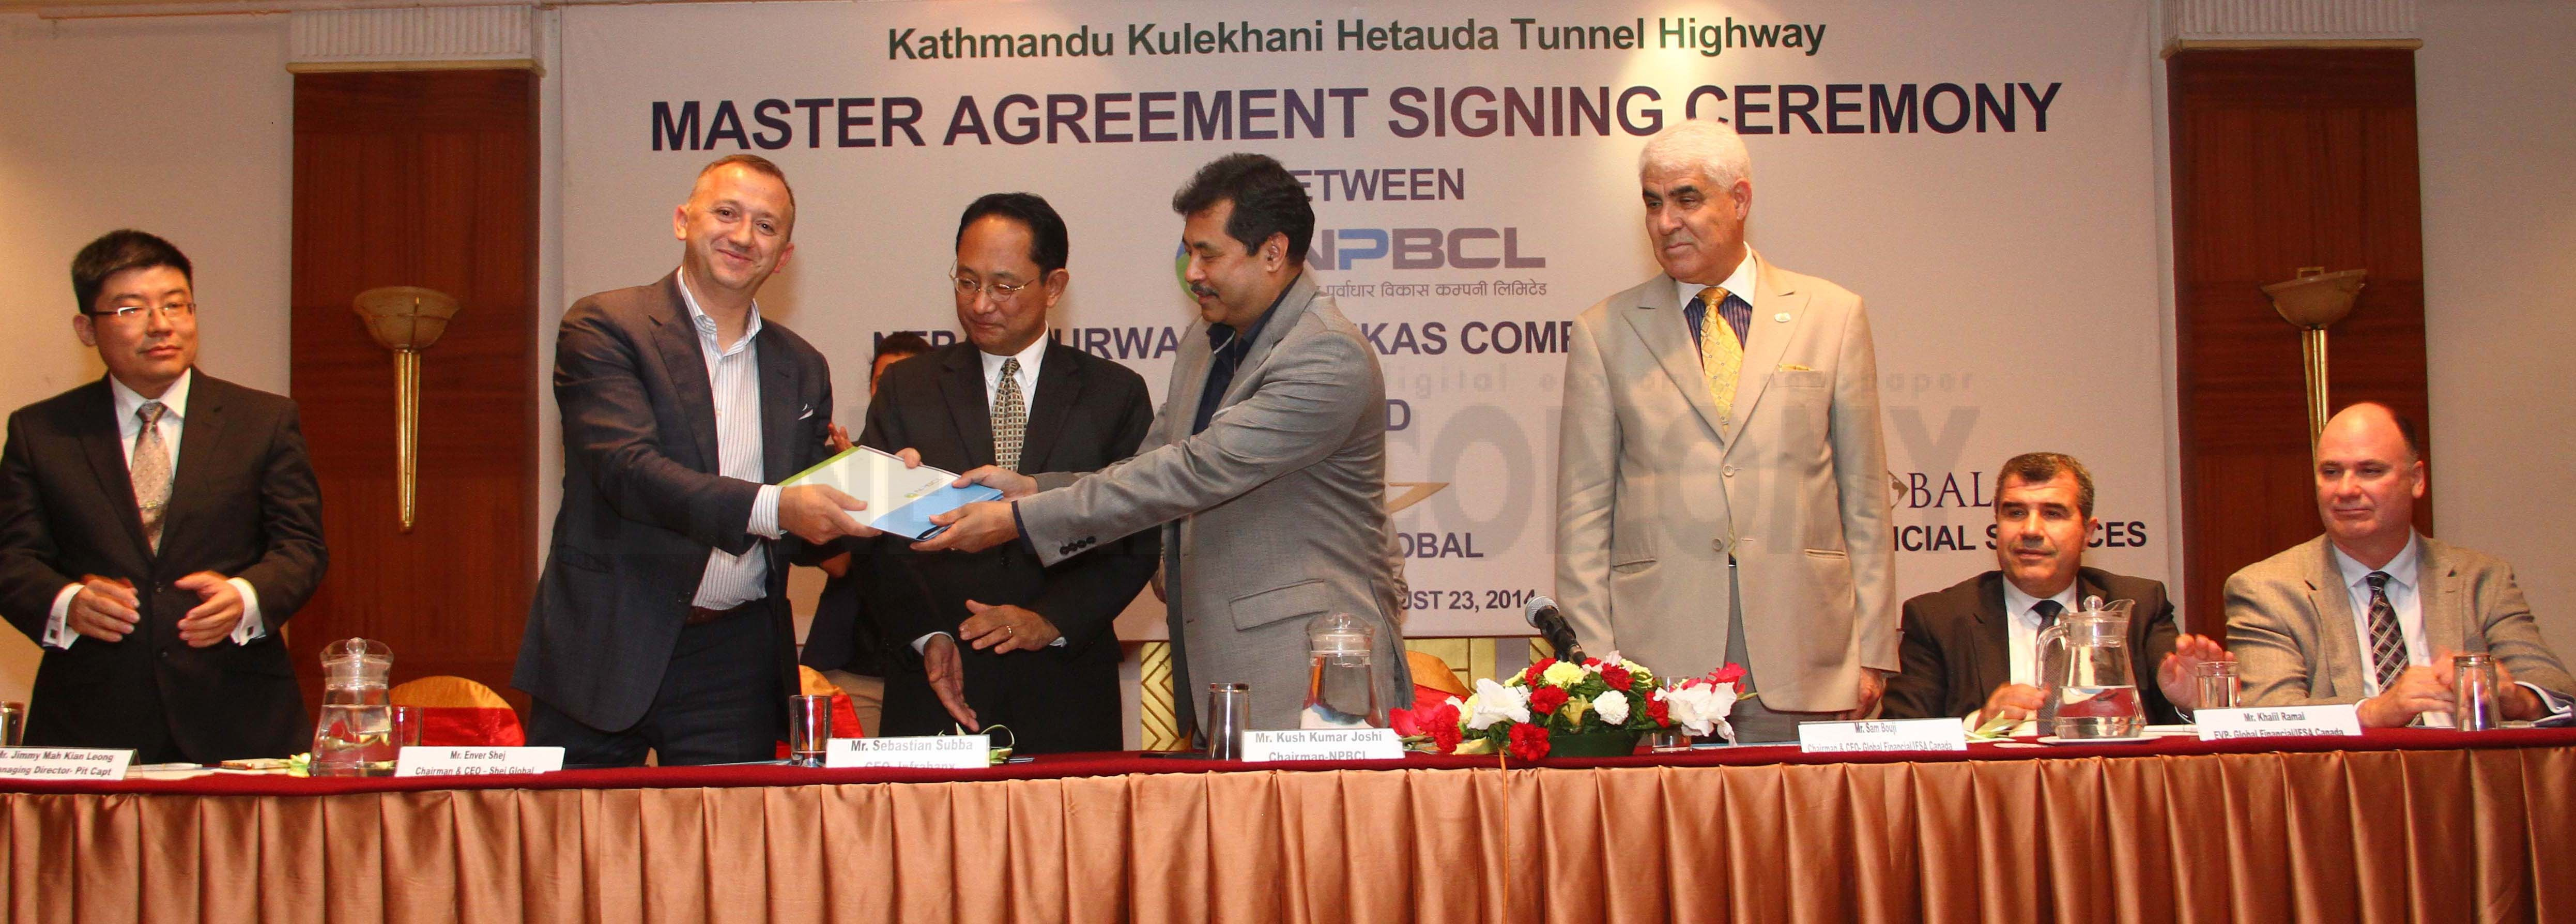 NPBCL, Canadian companies sign deal to finance tunnel highway